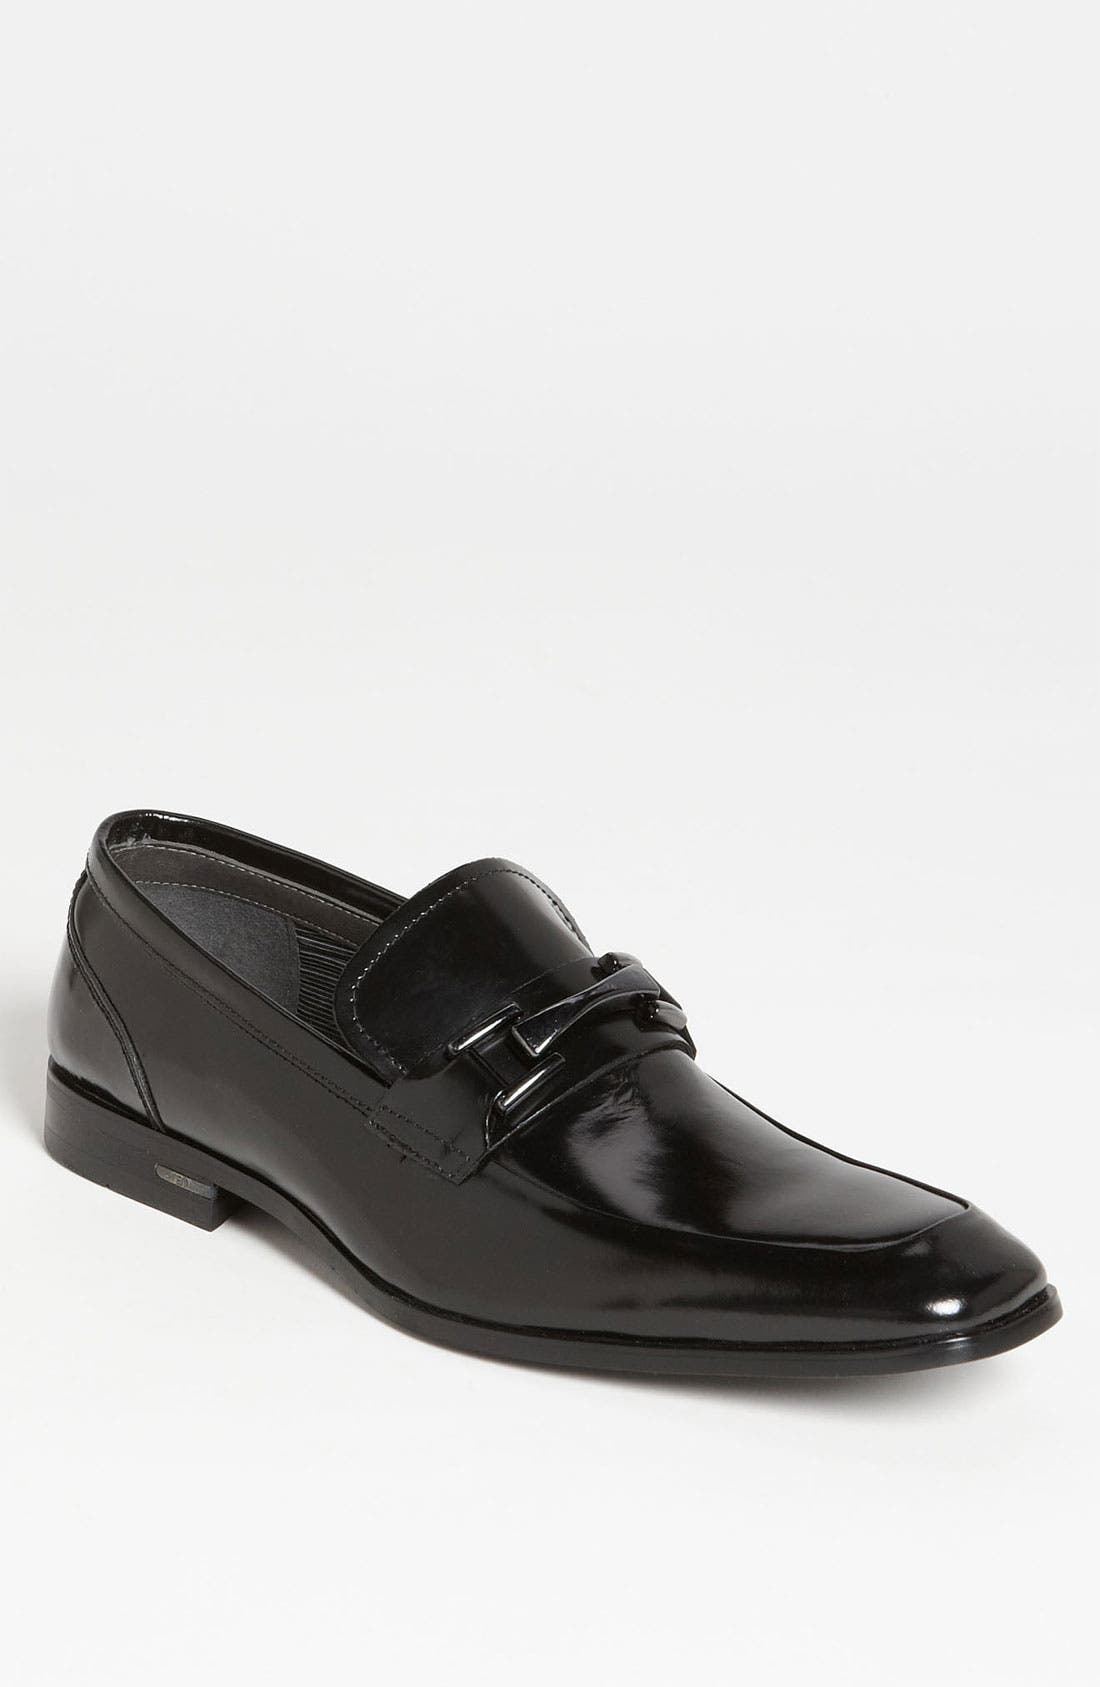 Alternate Image 1 Selected - Steve Madden 'Juggler' Bit Loafer (Online Only)